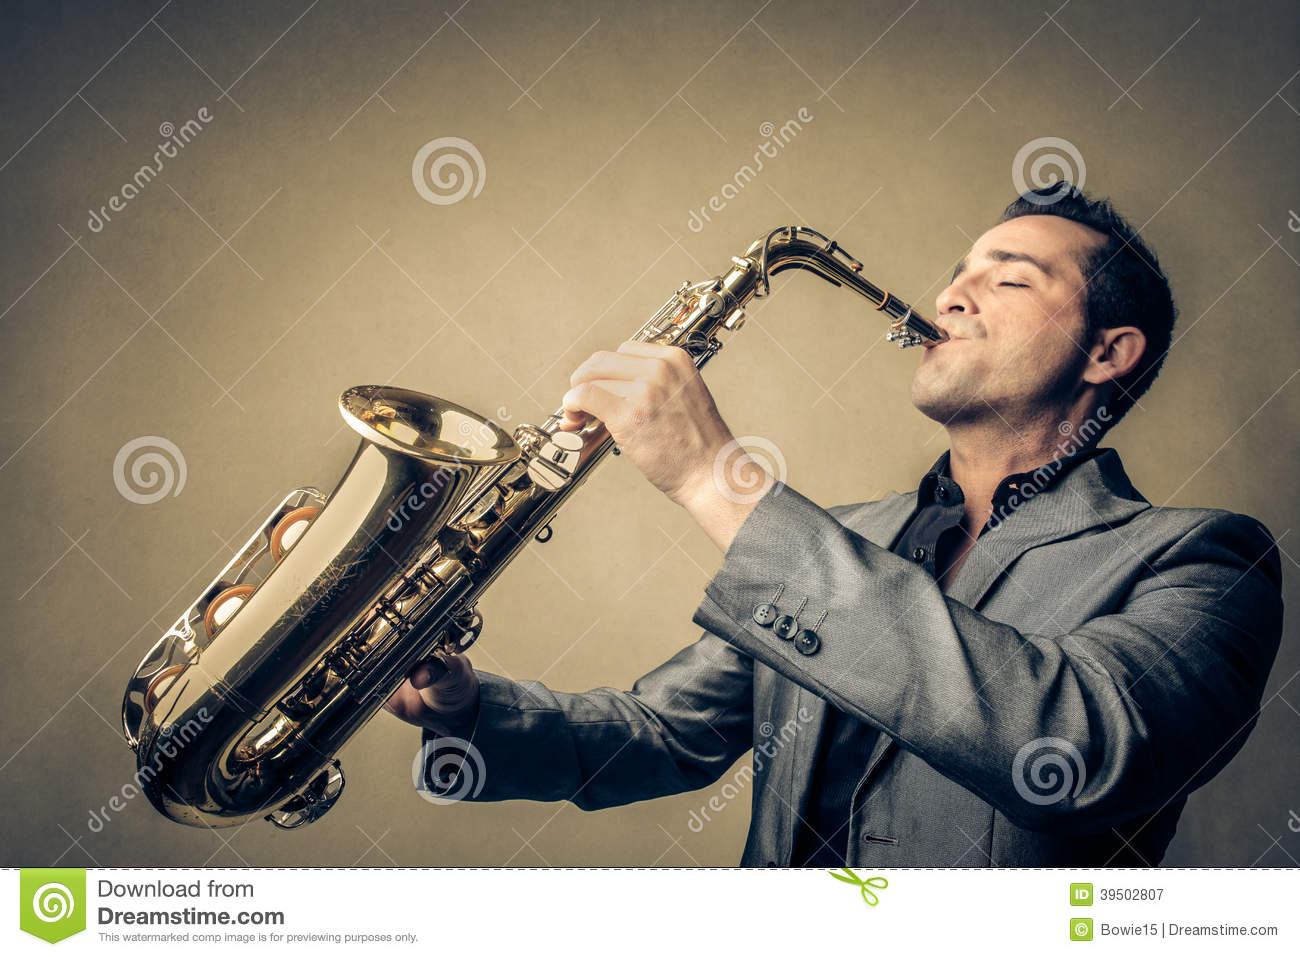 Man playing the sax